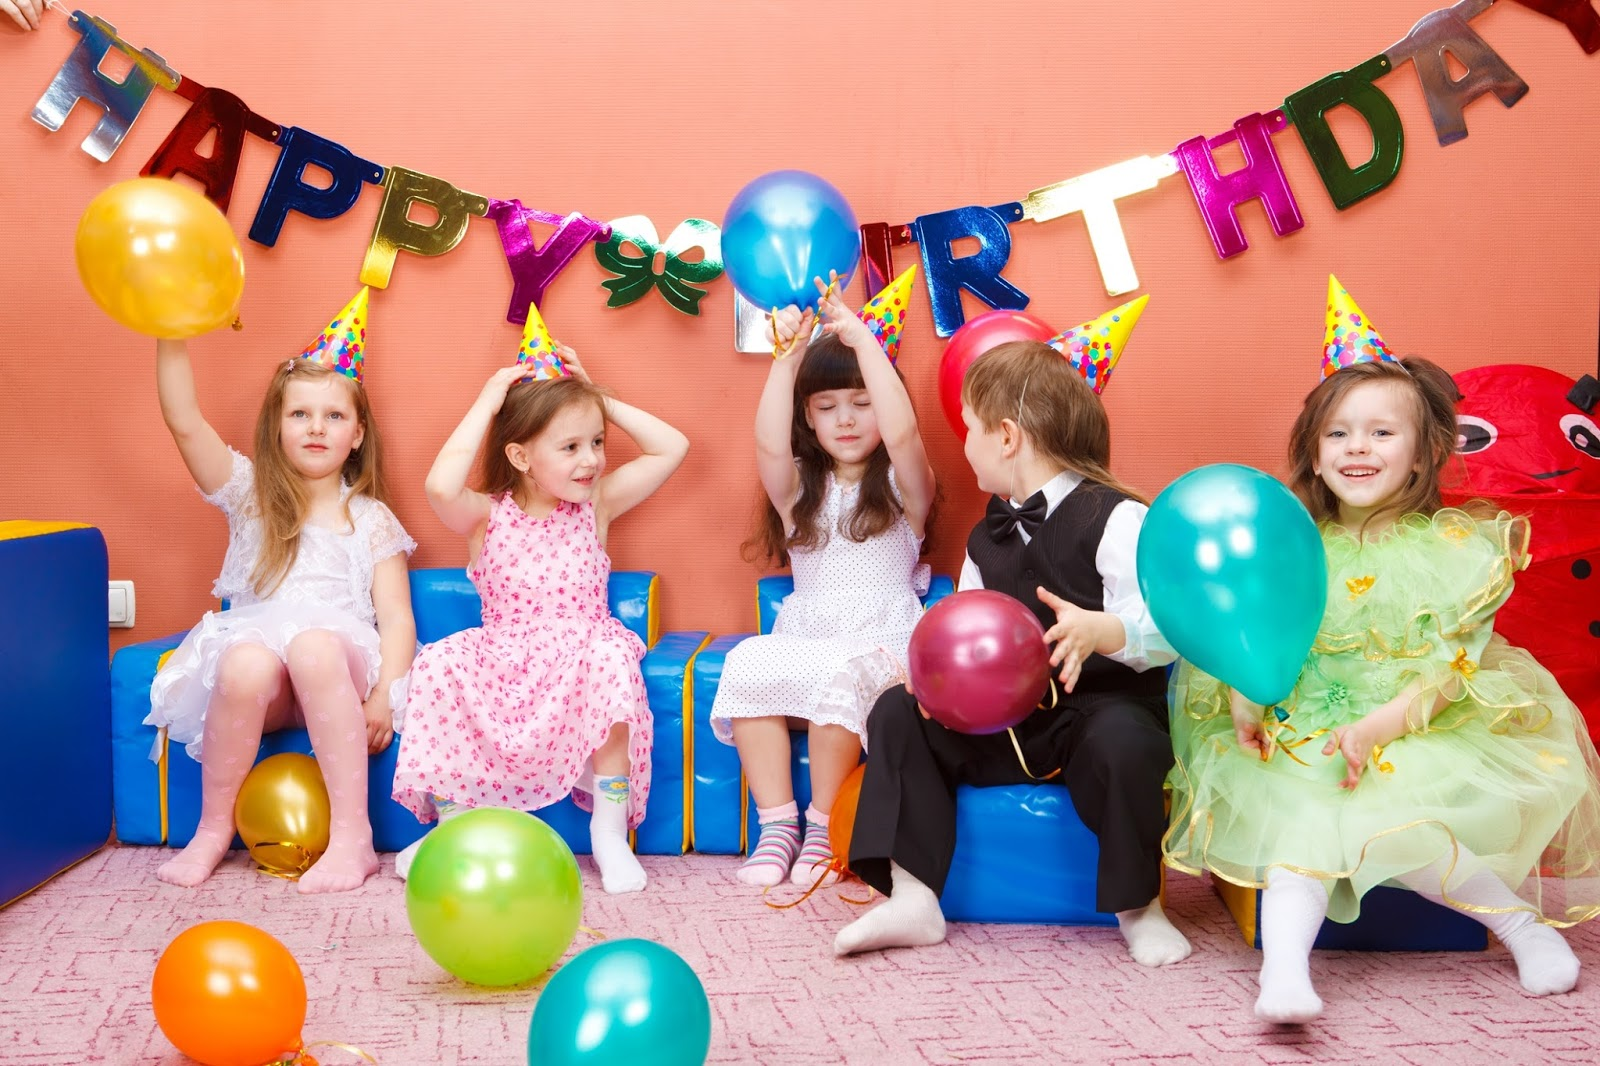 Here Are The Most Entertaining Ideas For Children's Parties